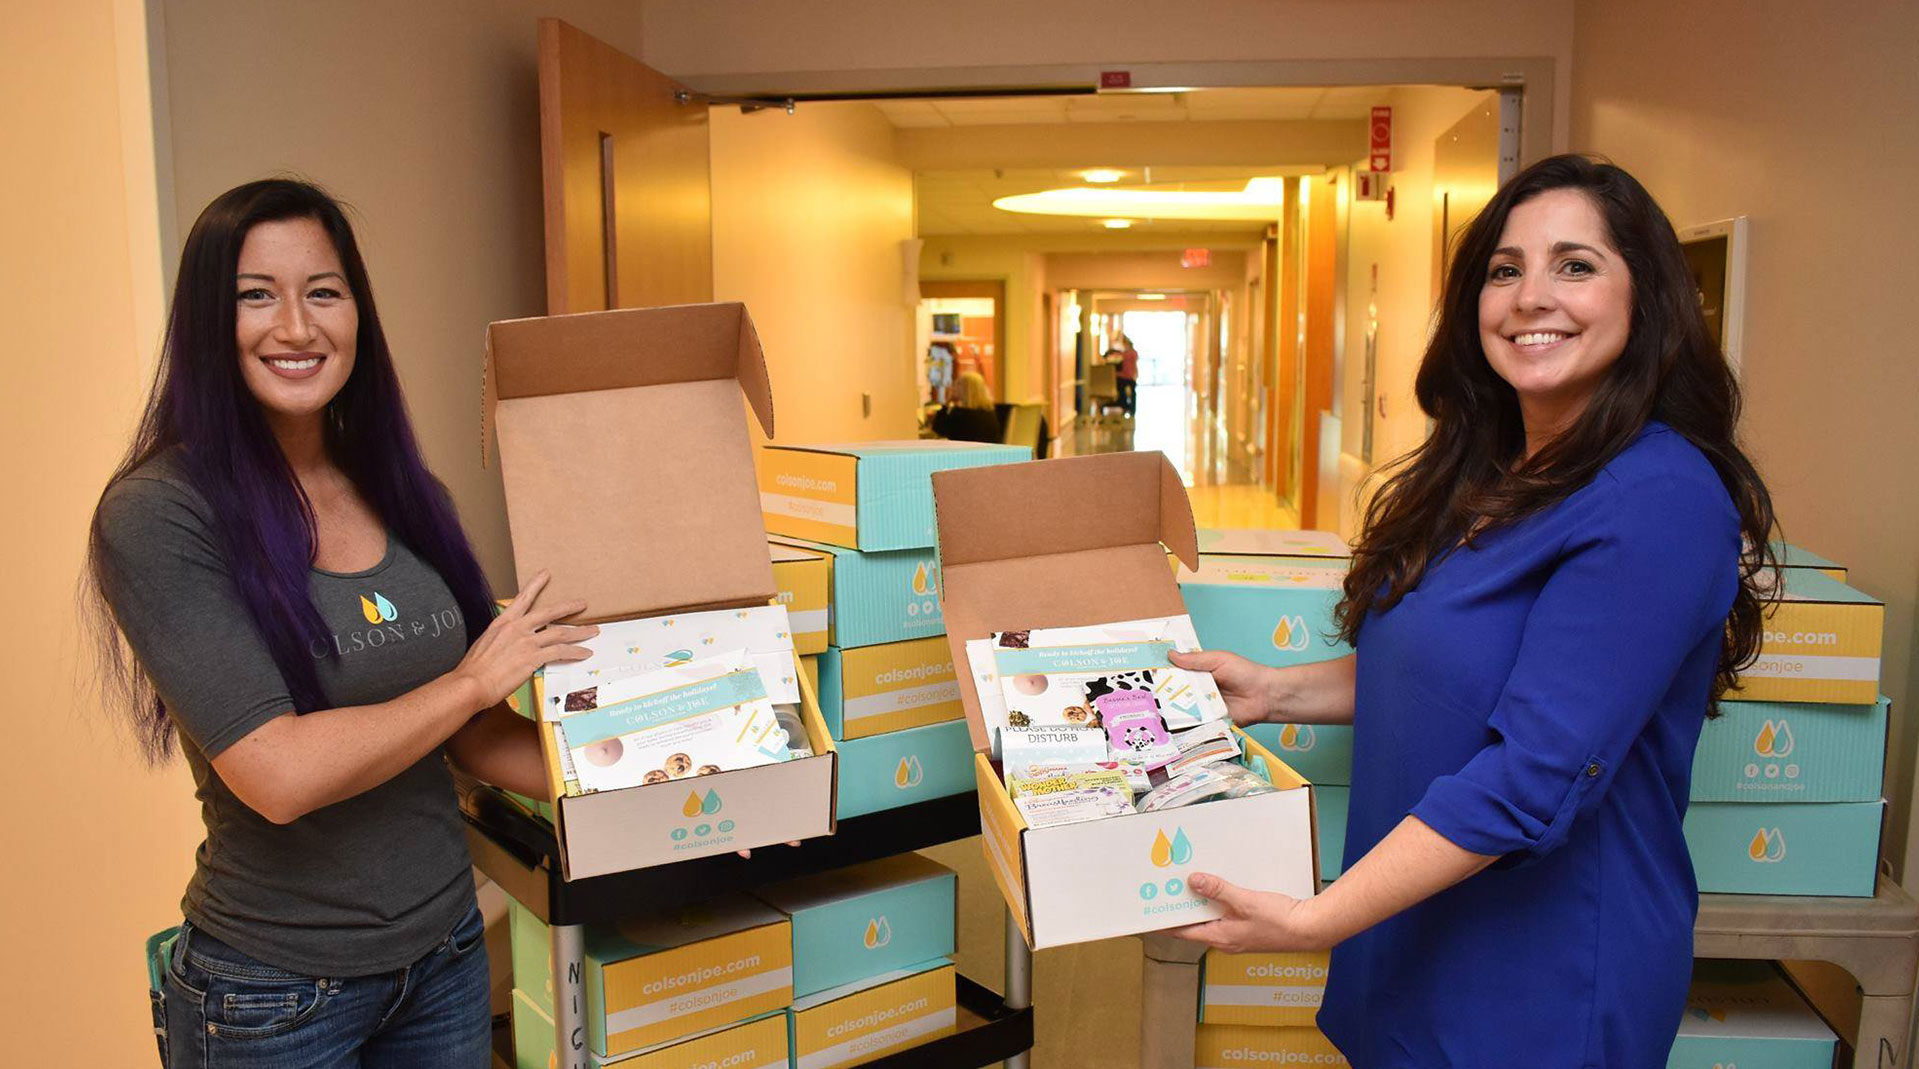 Naomi and Jessica giving away Colson & Joe subscription boxes in the NICU in Tampla, FL